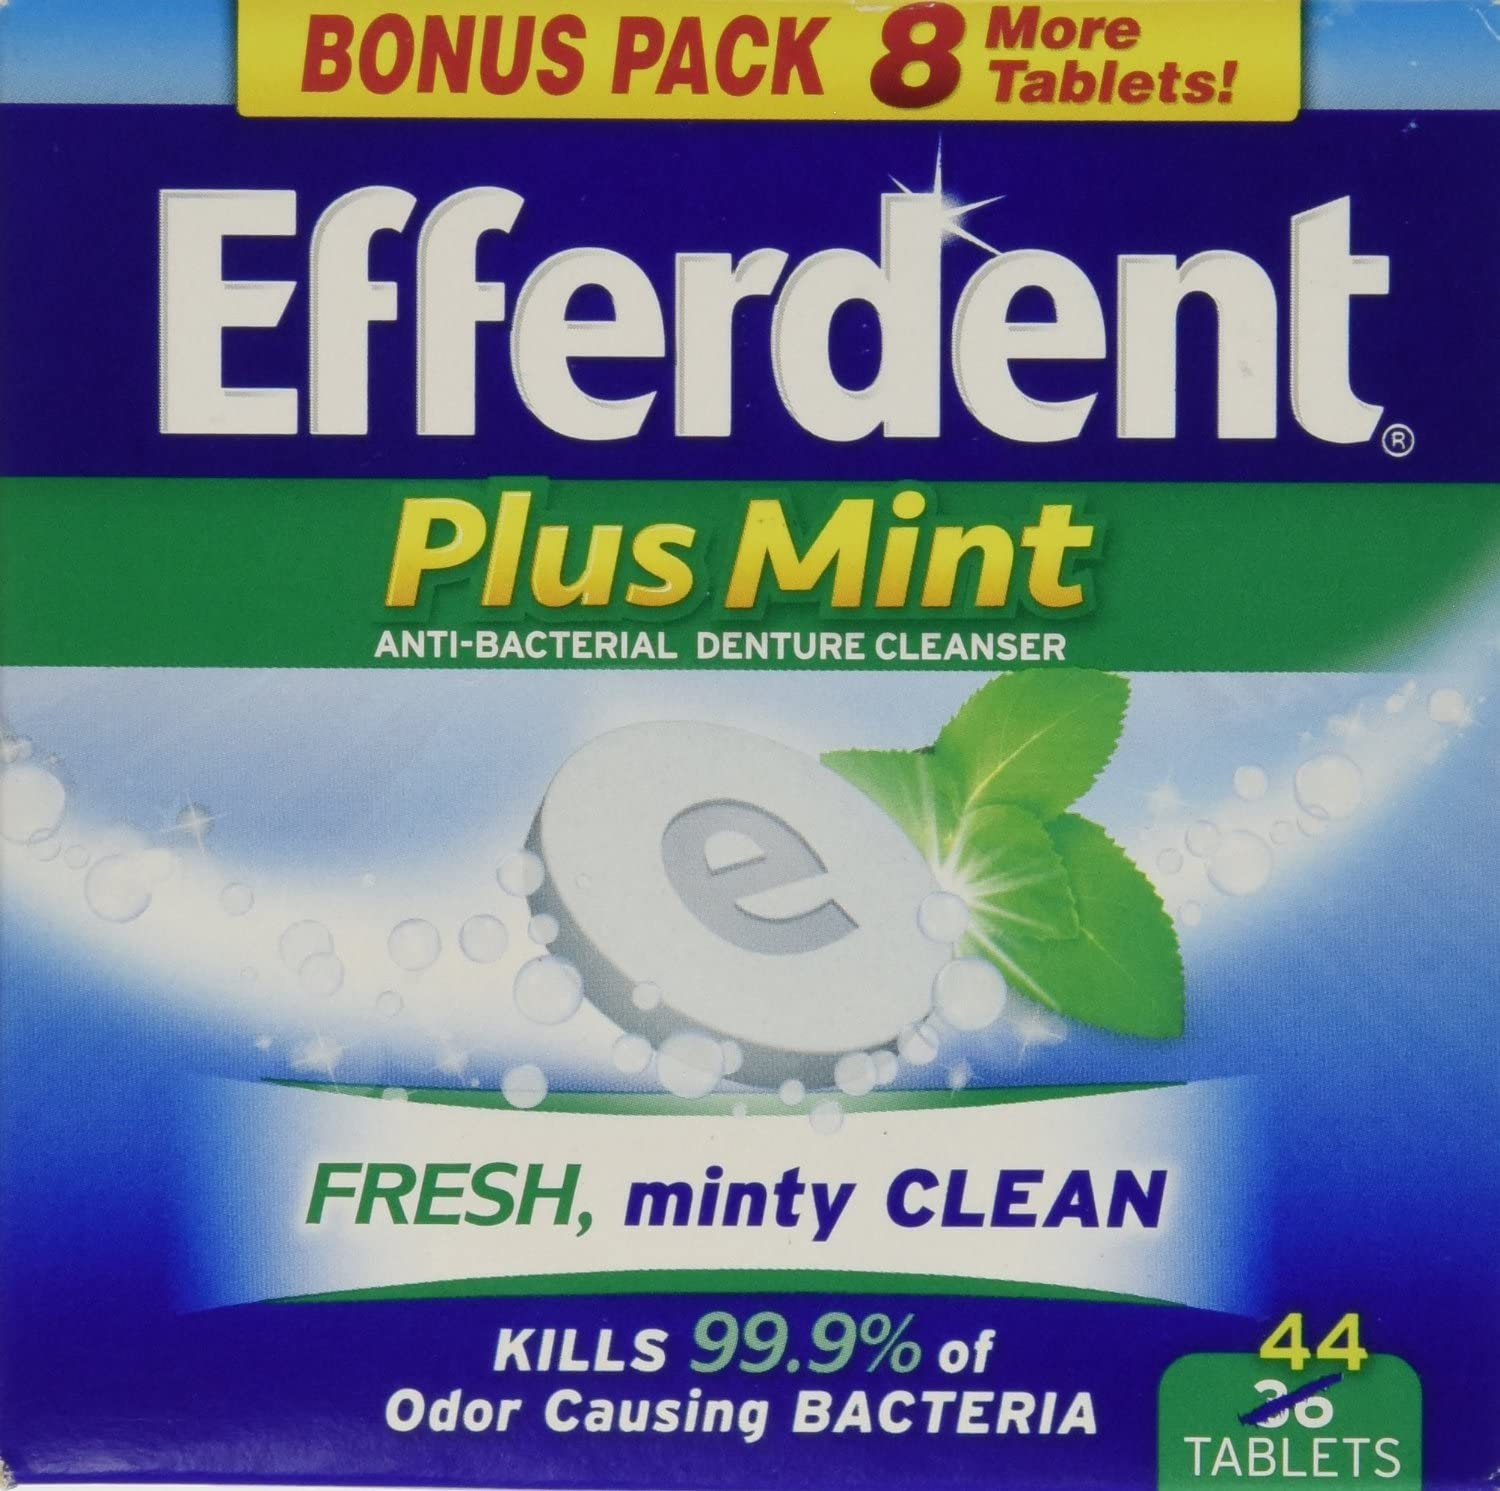 Efferdent Plus Mint Anti-Bacterial Denture Cleanser Tablets, 44 Count (Pack of 6)